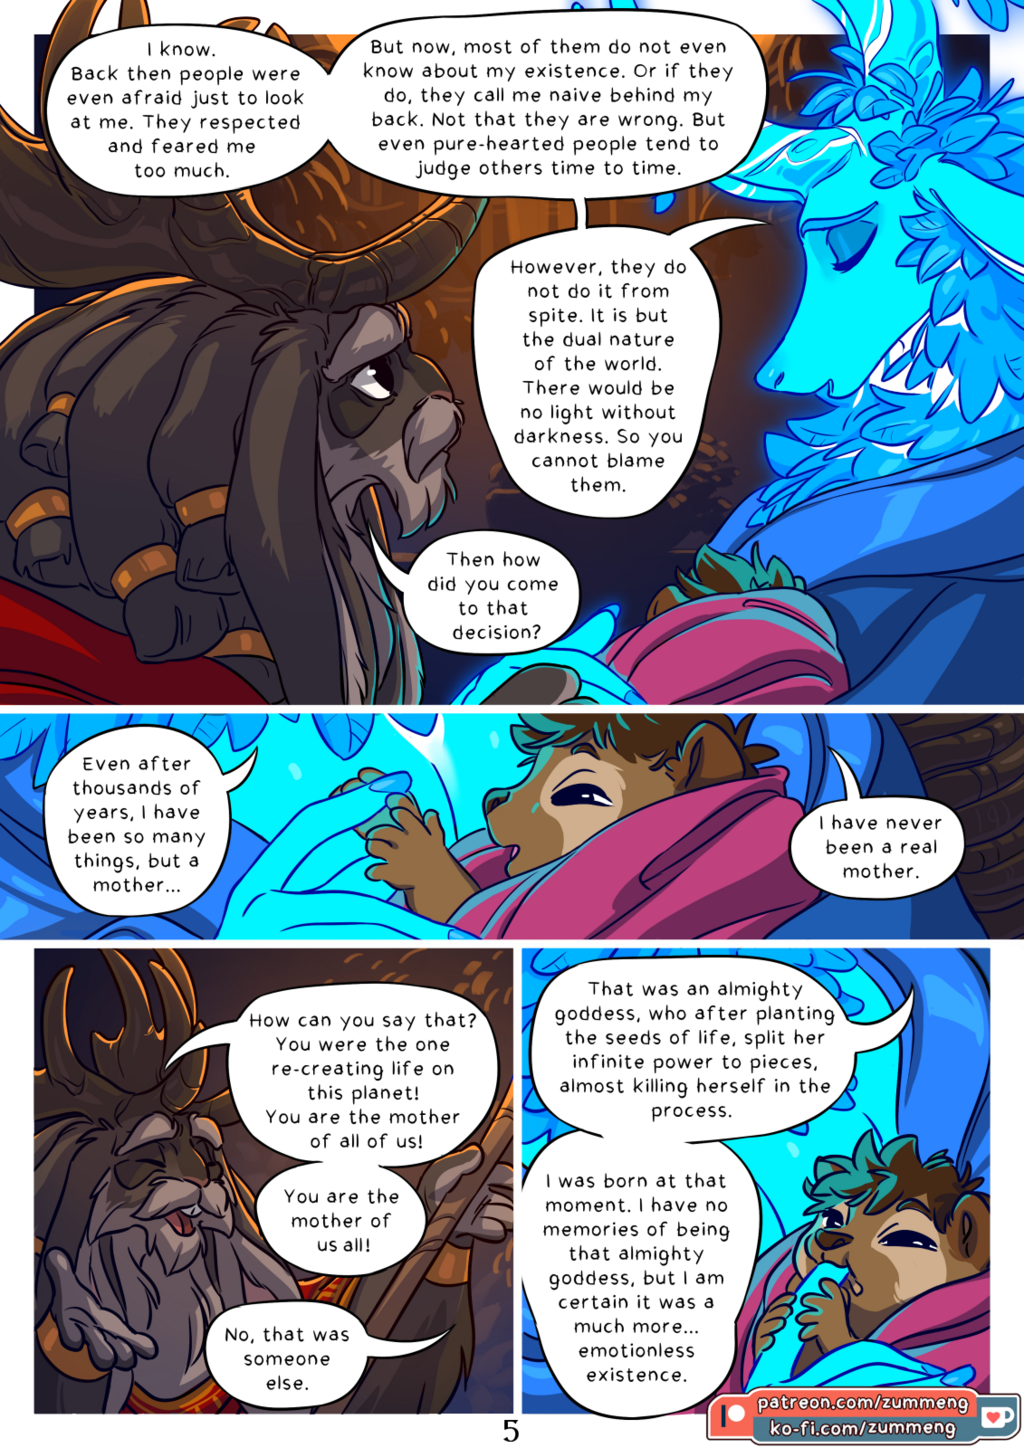 Tree of Life - Book 0 pg. 5.